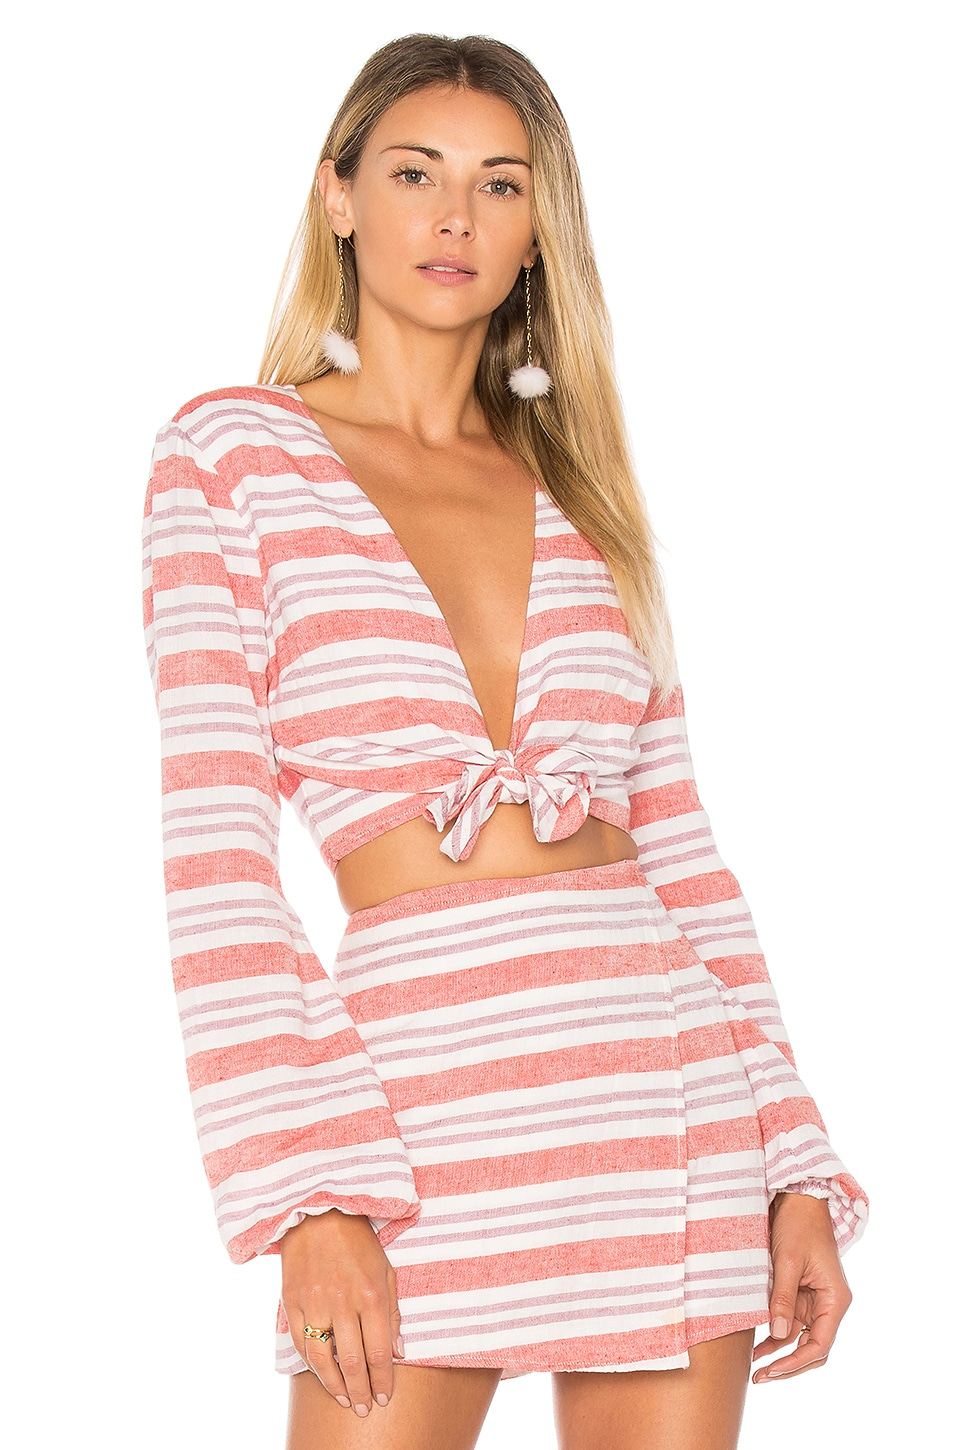 Lovers + Friends I Think I Love You Top in Berry Stripe